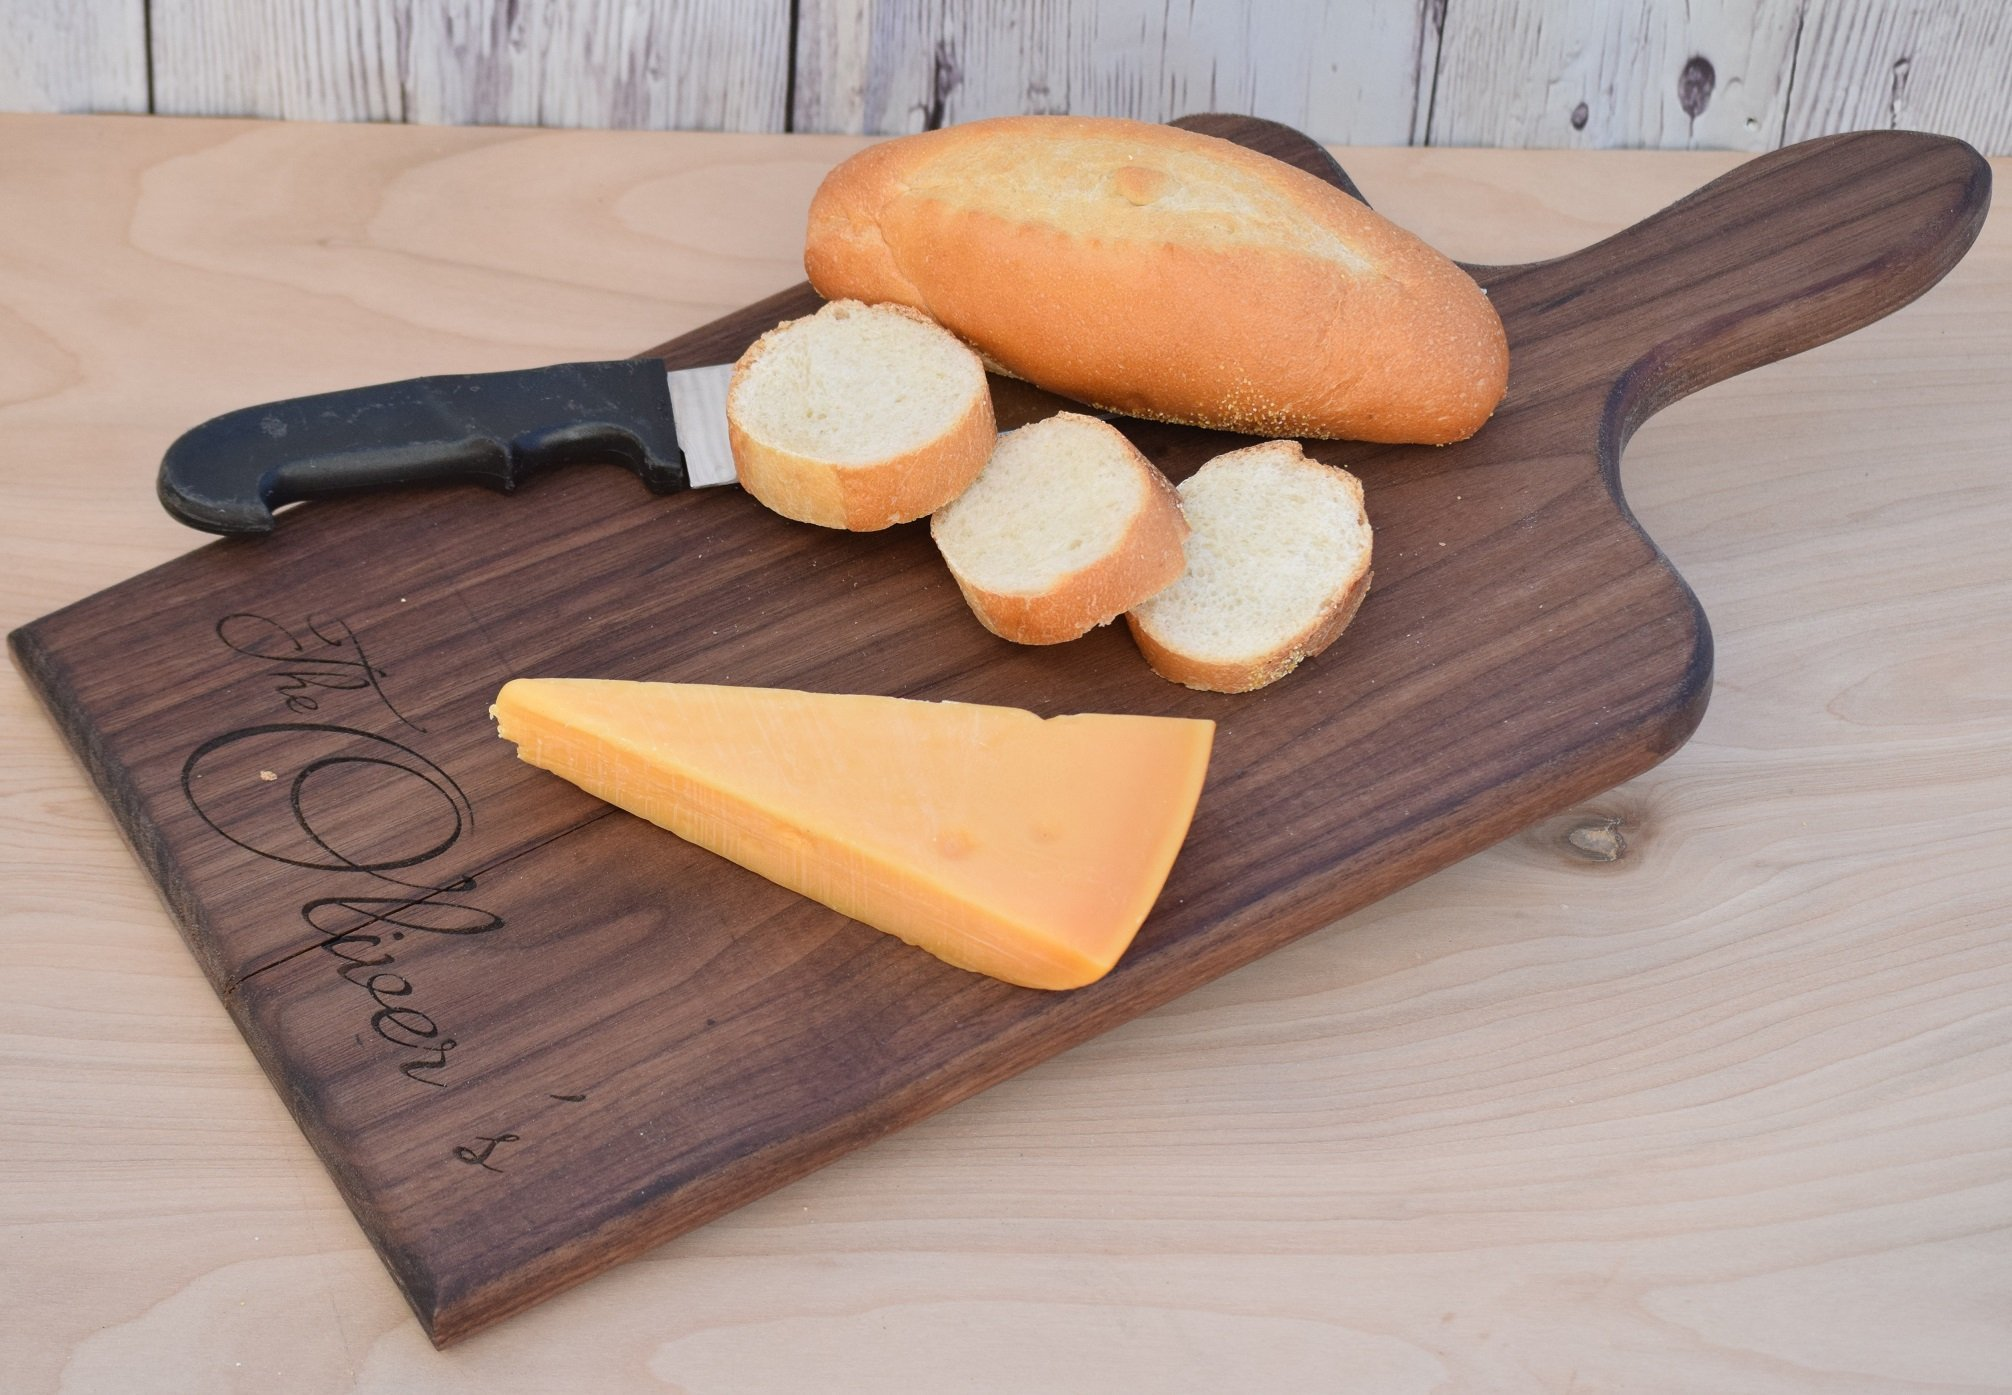 Personalized Cutting Board - Bread Board - Personalized Cheese Board - Serving Board - Custom Cutting Board - Engraved Cutting Boards